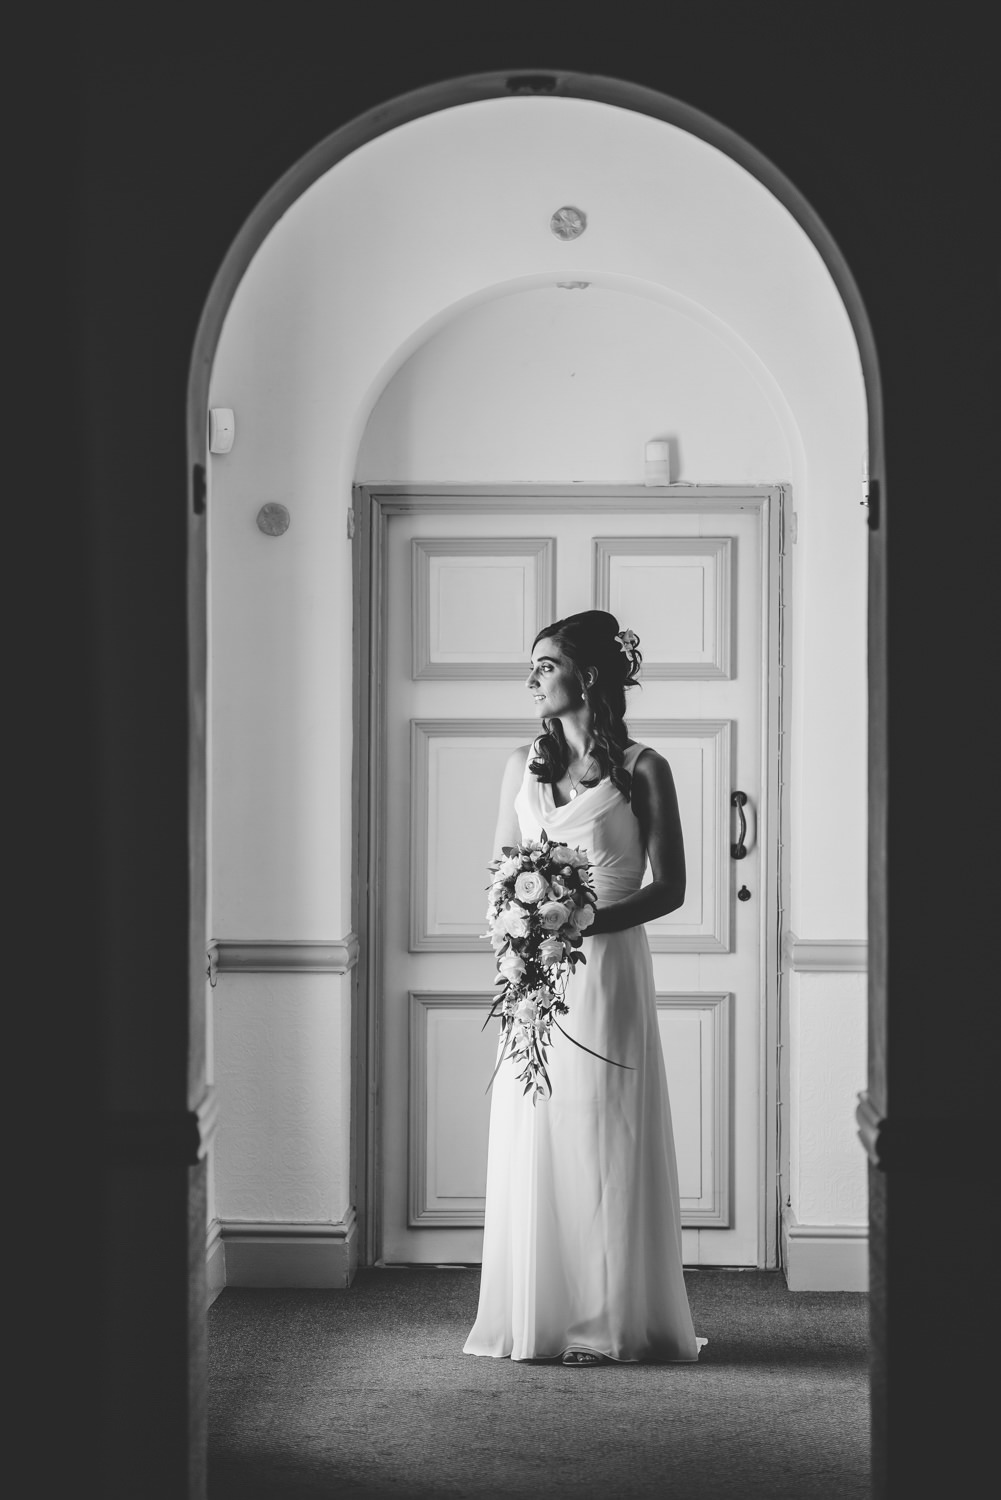 Best wedding photography-149.jpg